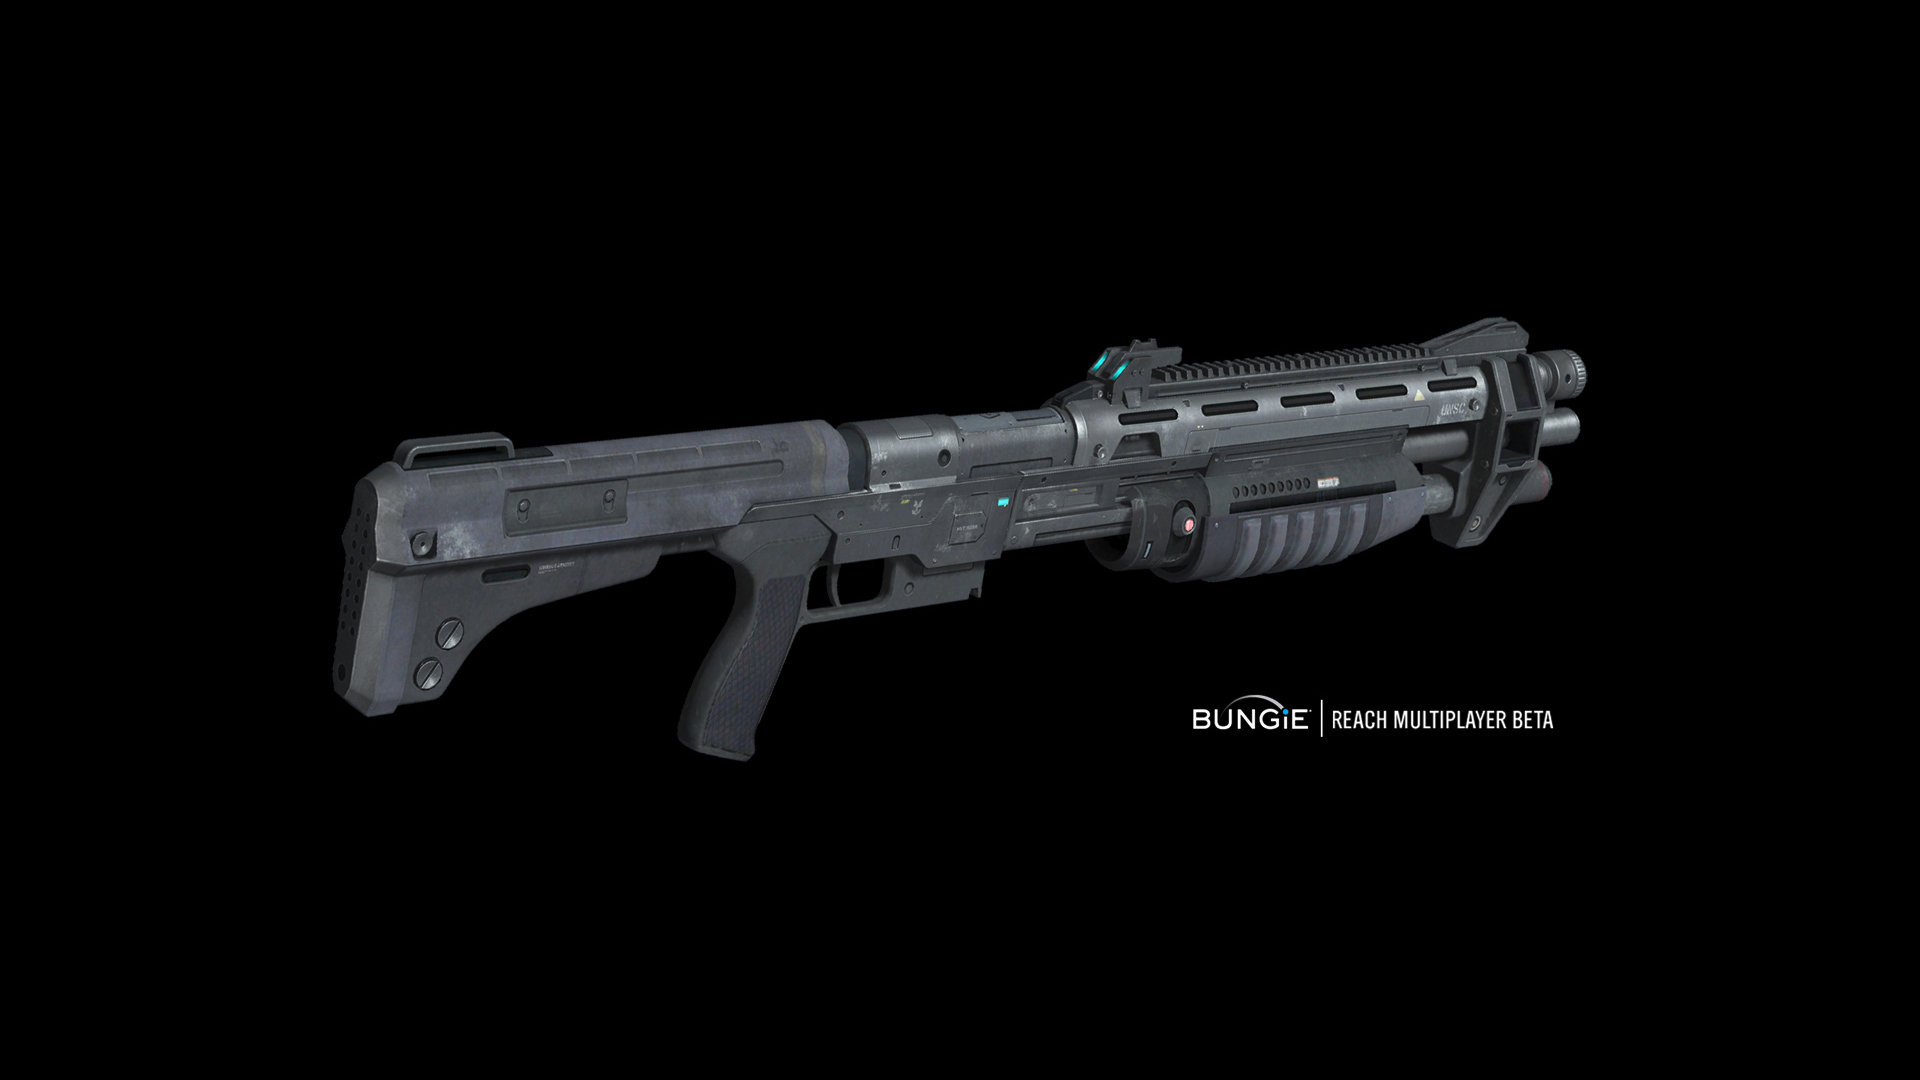 ArtStation - Halo Reach: Shotgun (3d hard surface model) in